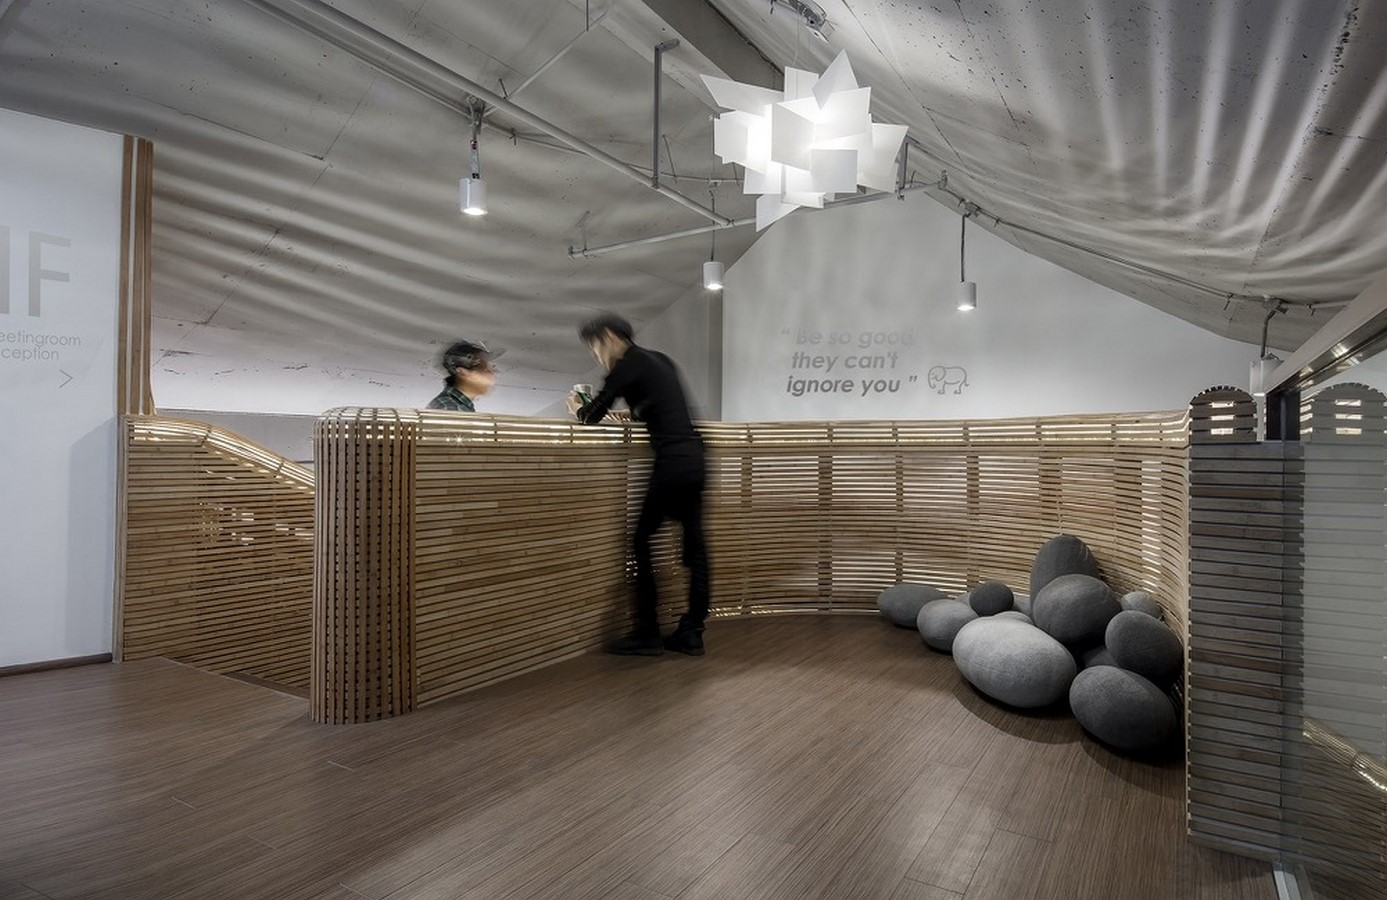 Elephant-Parade Office by CUN Design: Constructed with Bamboo - Sheet2